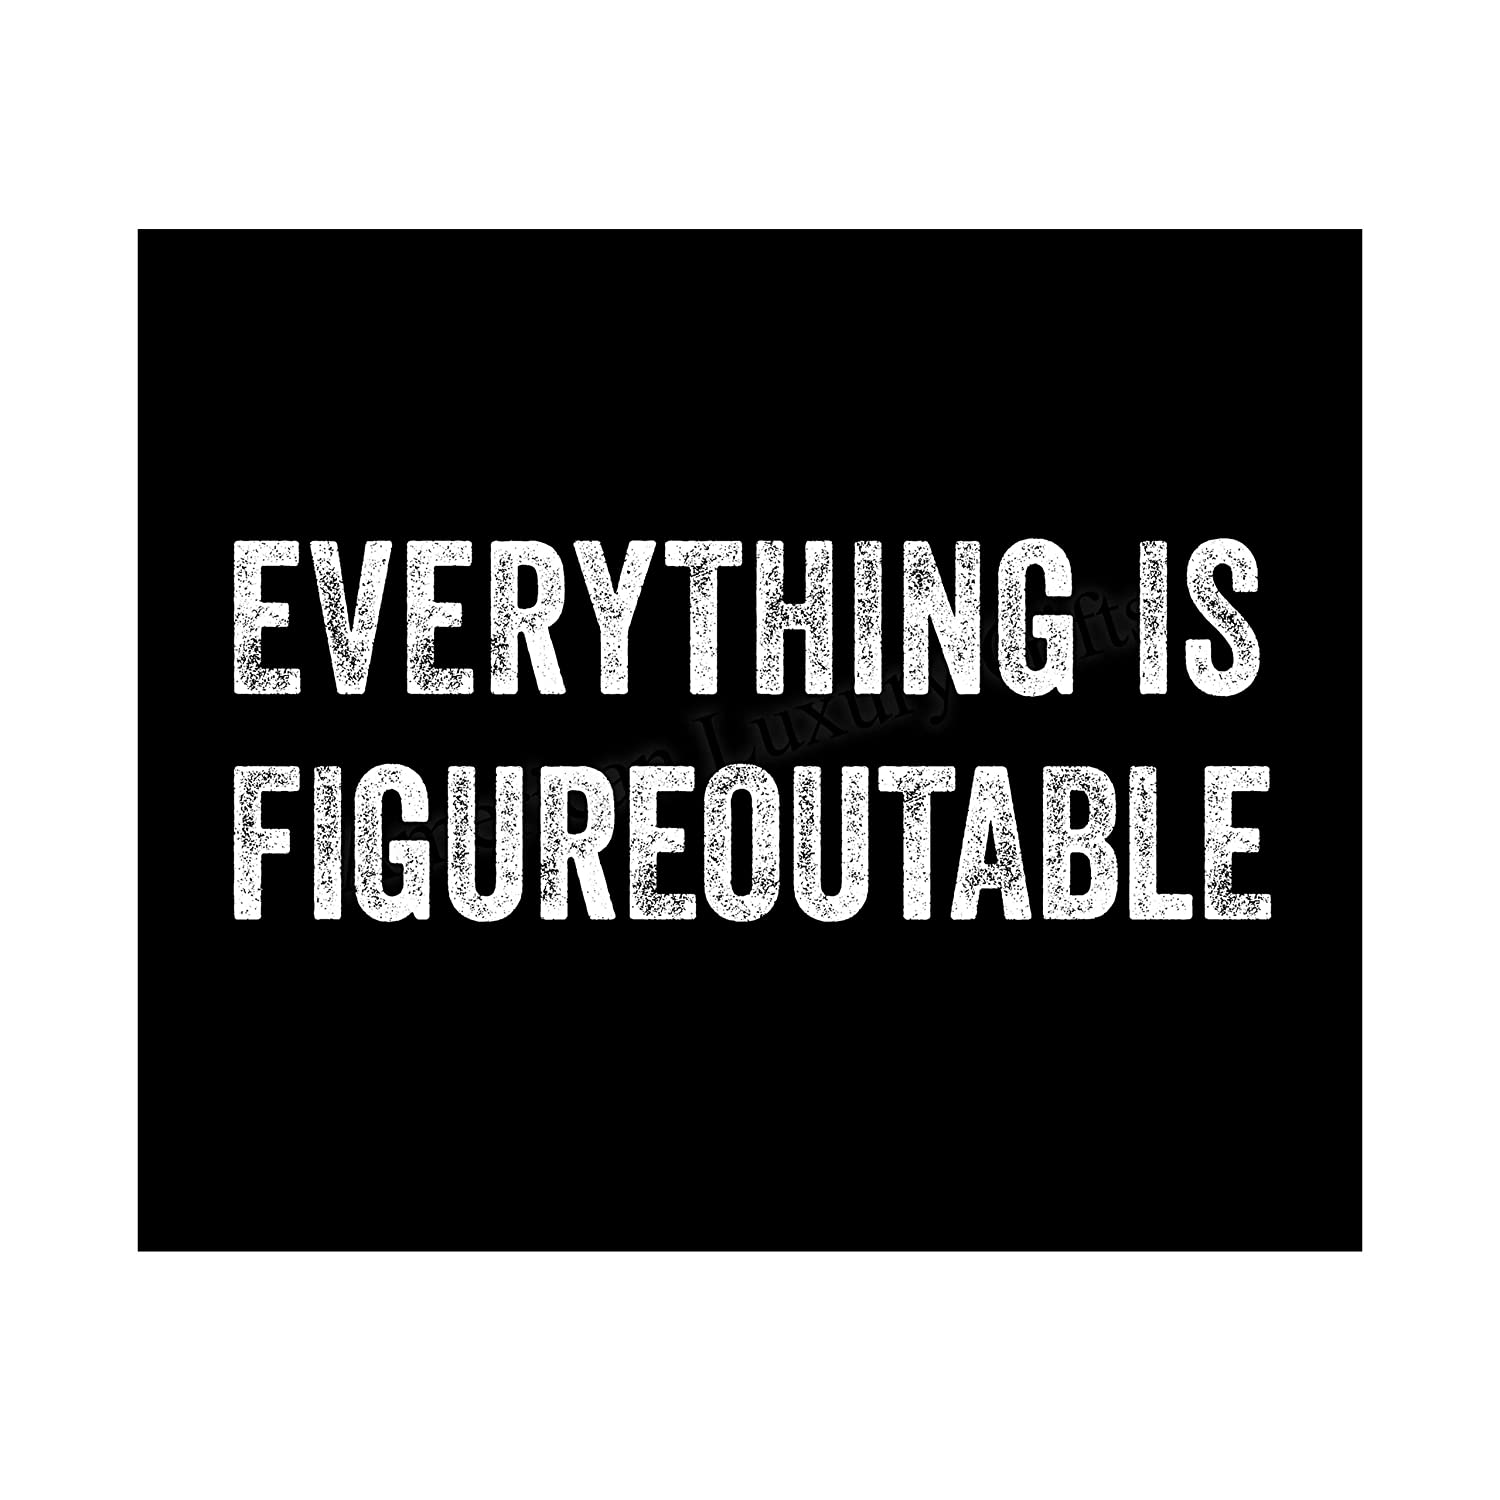 """""""Everything Is Figureoutable"""" Funny Wall Art Sign-10 x 8"""" Sarcastic Poster Print-Ready to Frame. Distressed Typographic Design. Humorous Home-Office-Desk-Shop-Cave Decor. Great Gift-Fun Sign for All!"""